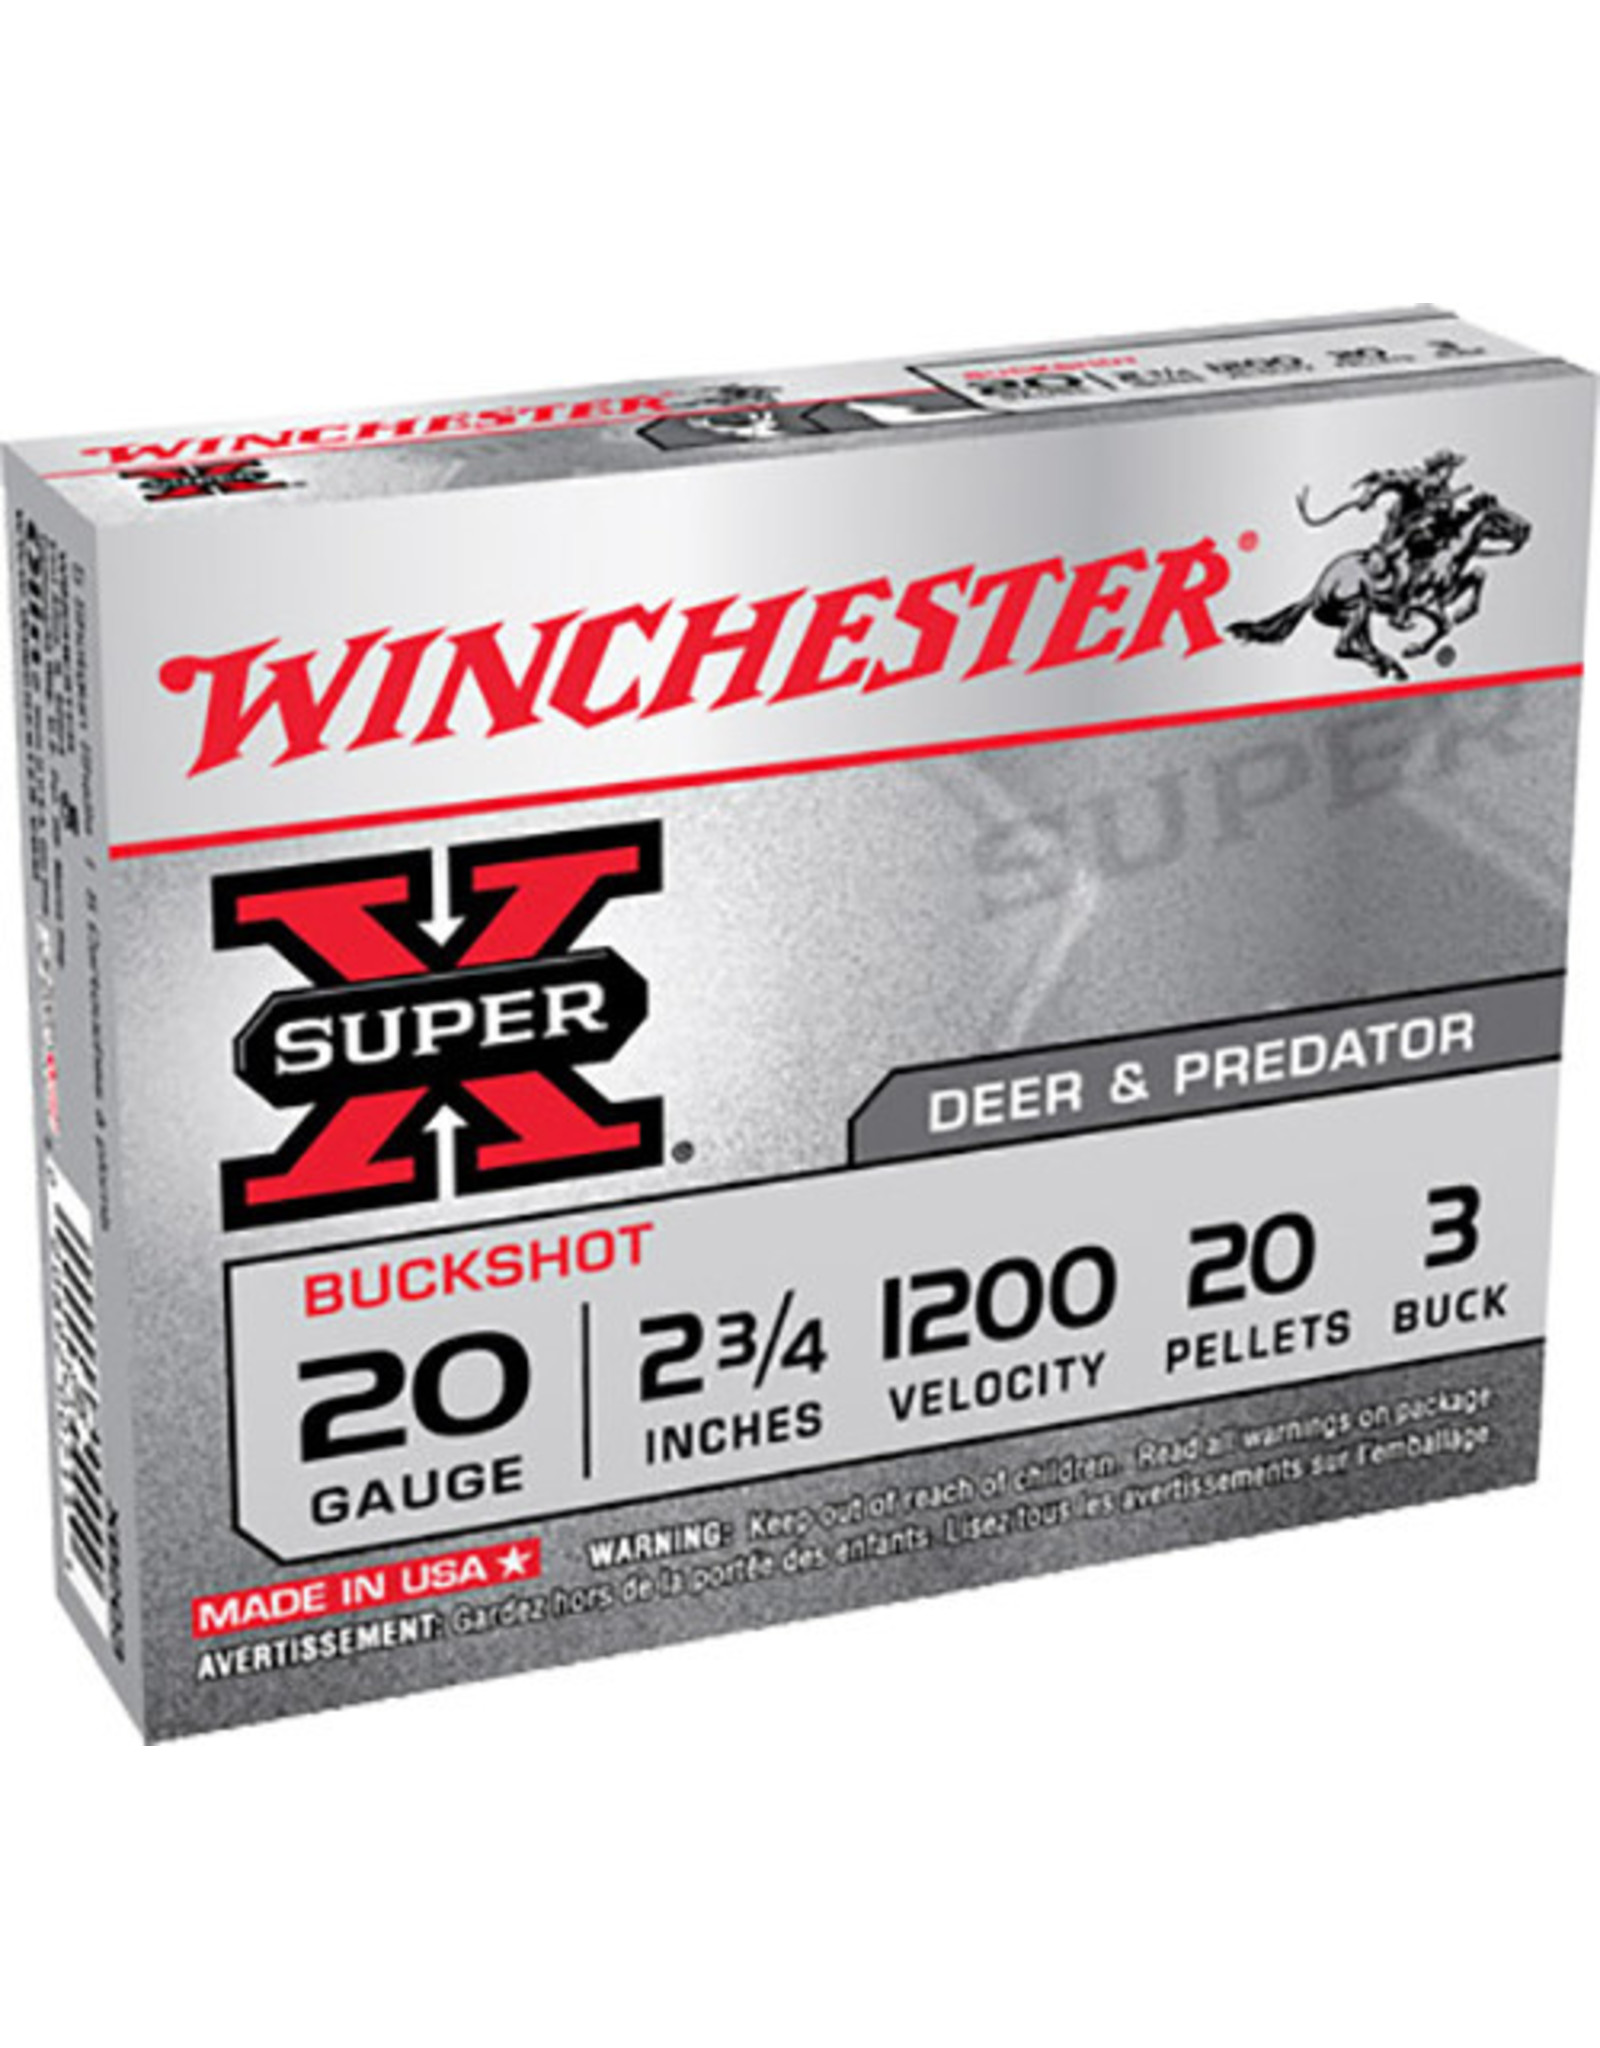 """WINCHESTER AMMO Winchester 20 Ga 2-3/4"""" 20 Pellets #3 Buck 1200 FPS - 5 Count"""